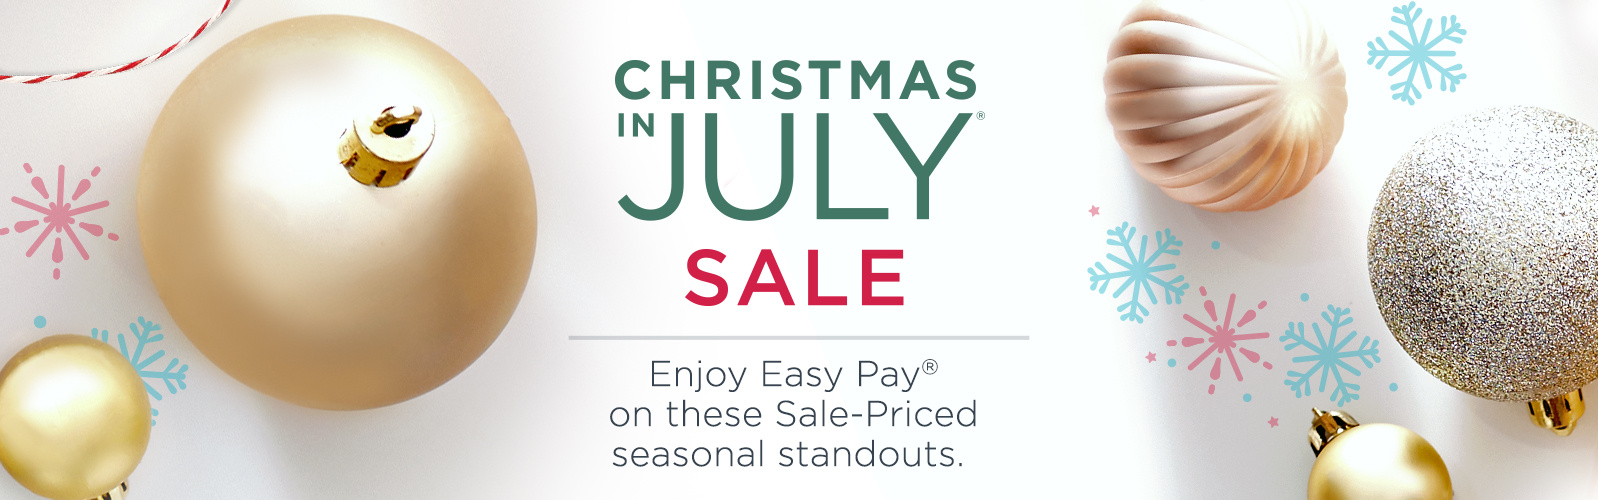 Qvc beauty easy pay / Lululemon outlet in california